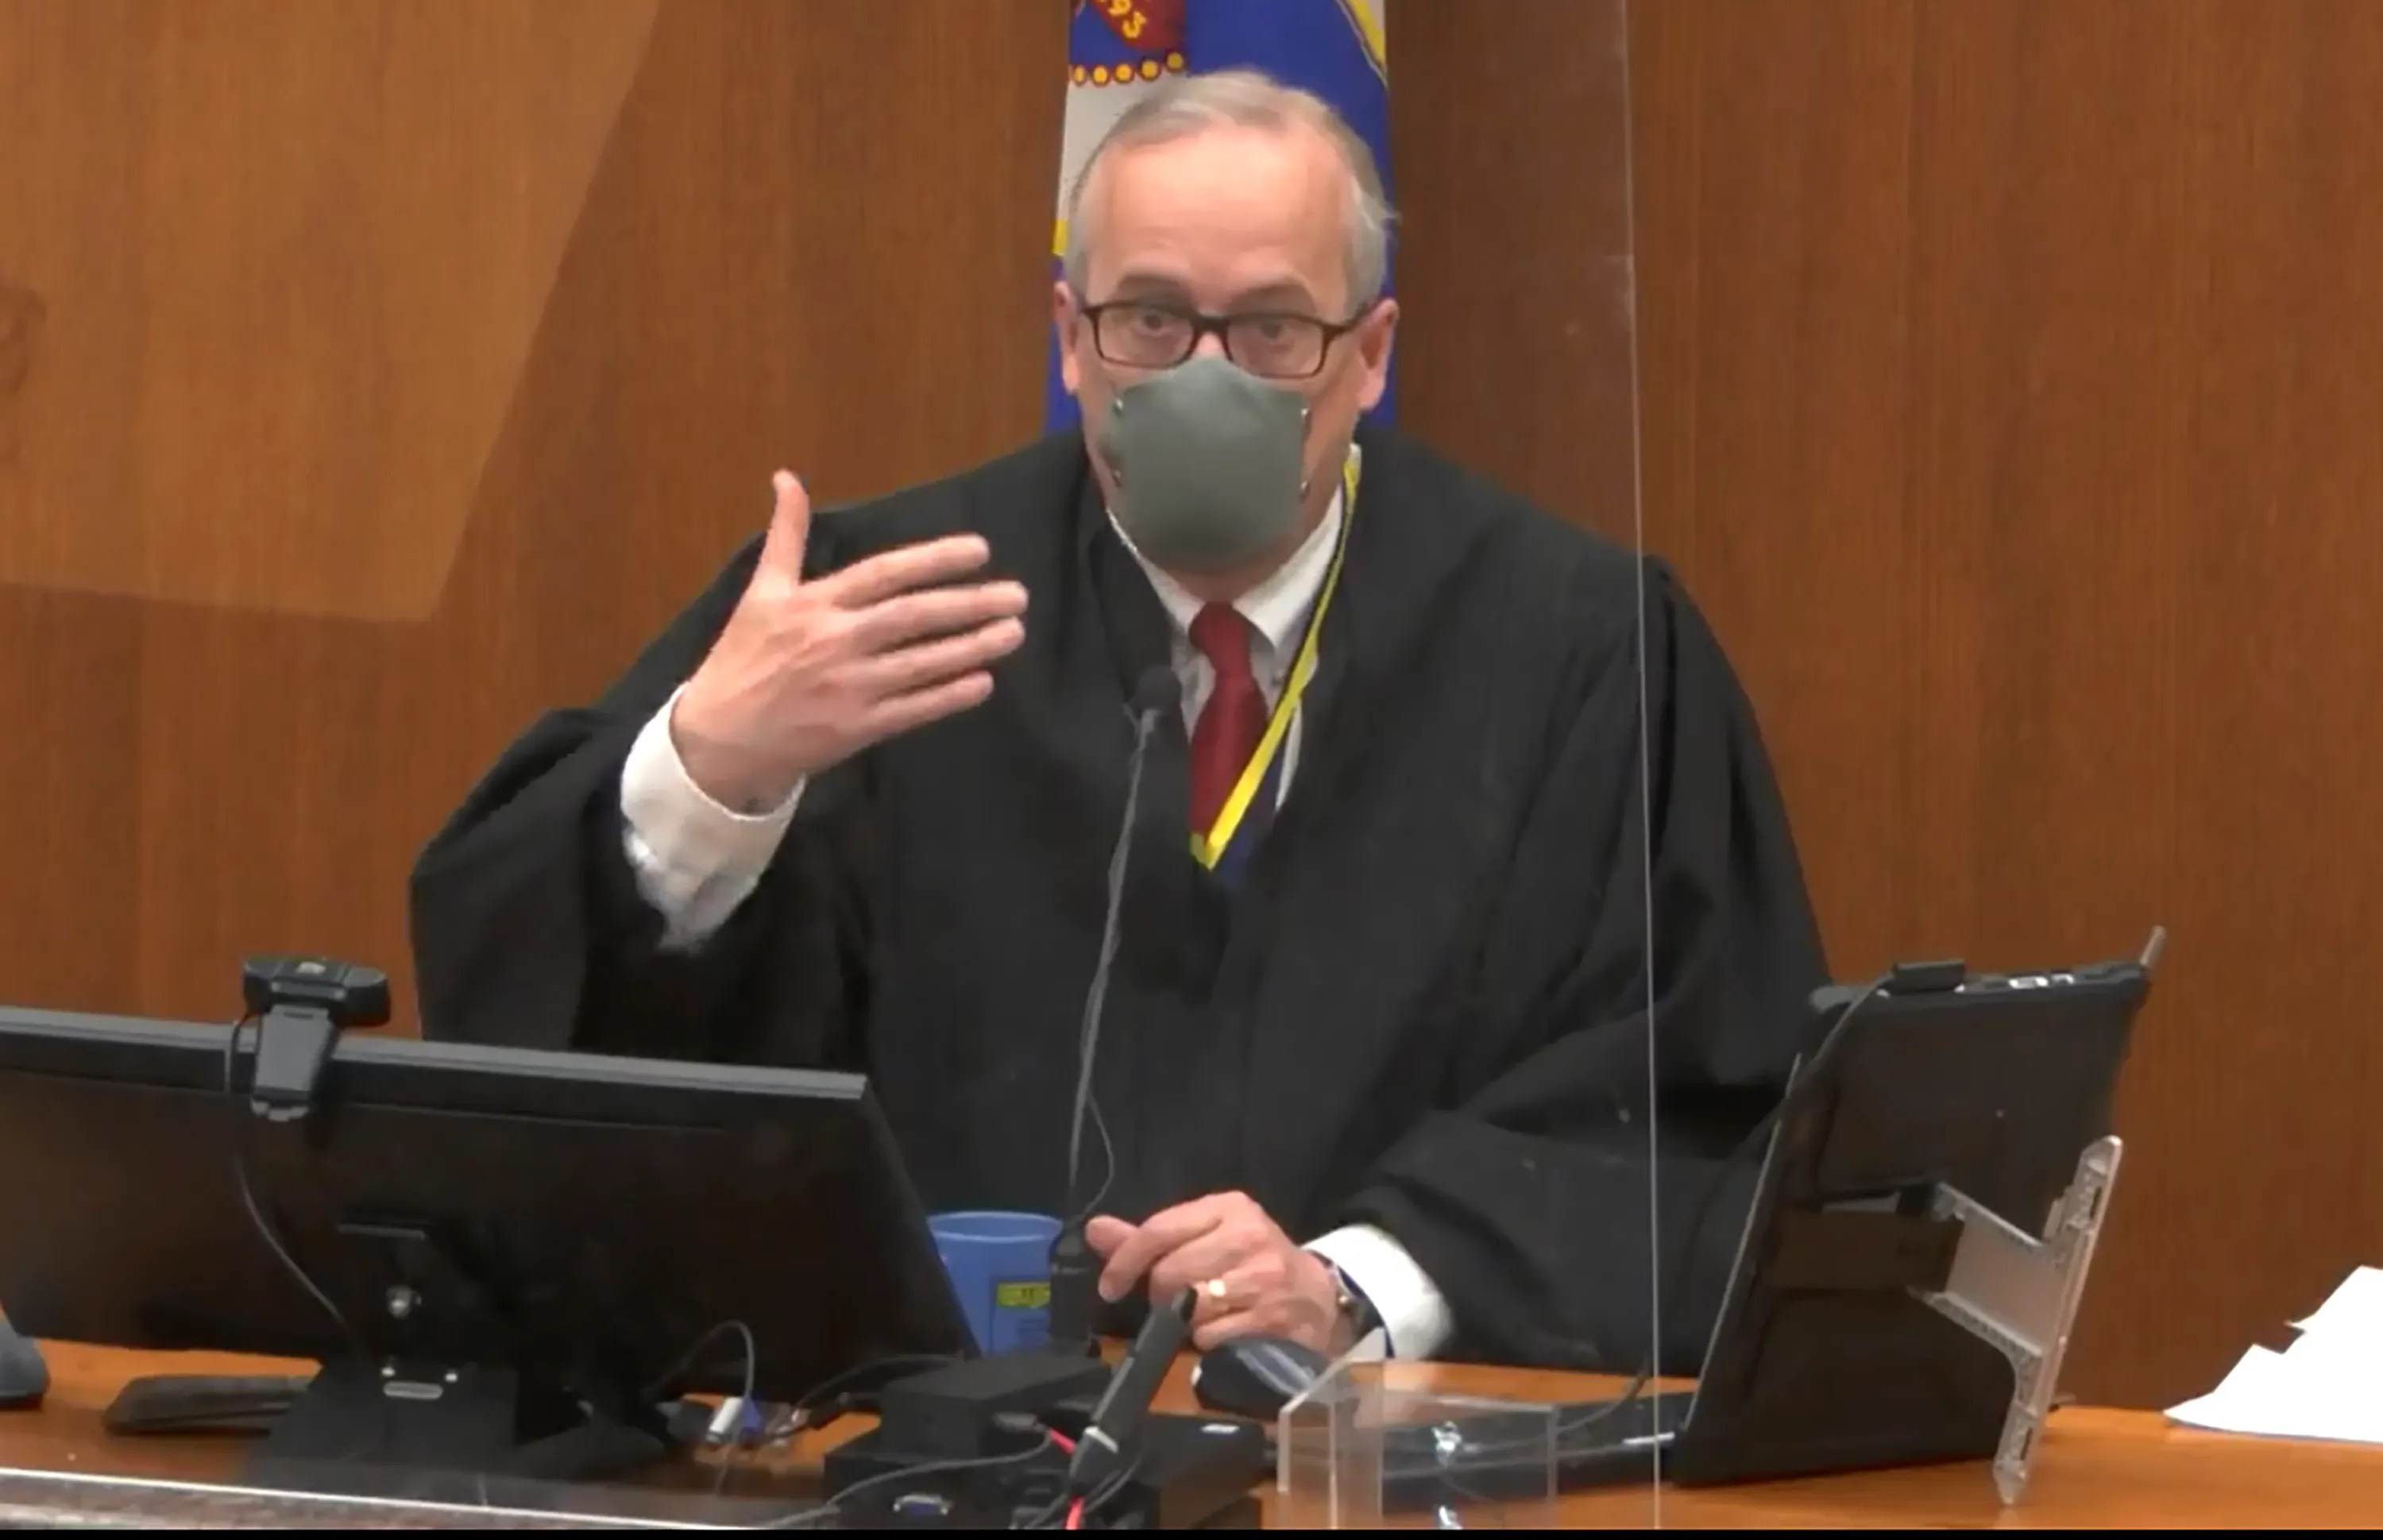 In this screen grab from video, Hennepin County Judge PeterCahill presides over pretrial motions prior to continuing jury selection in the trial of former Minneapolis police officer Derek Chauvin, Wednesday, March 10, 2021, at the Hennepin County Courthouse in Minneapolis.  Chauvin is charged in the May 25, 2020 death of George Floyd.